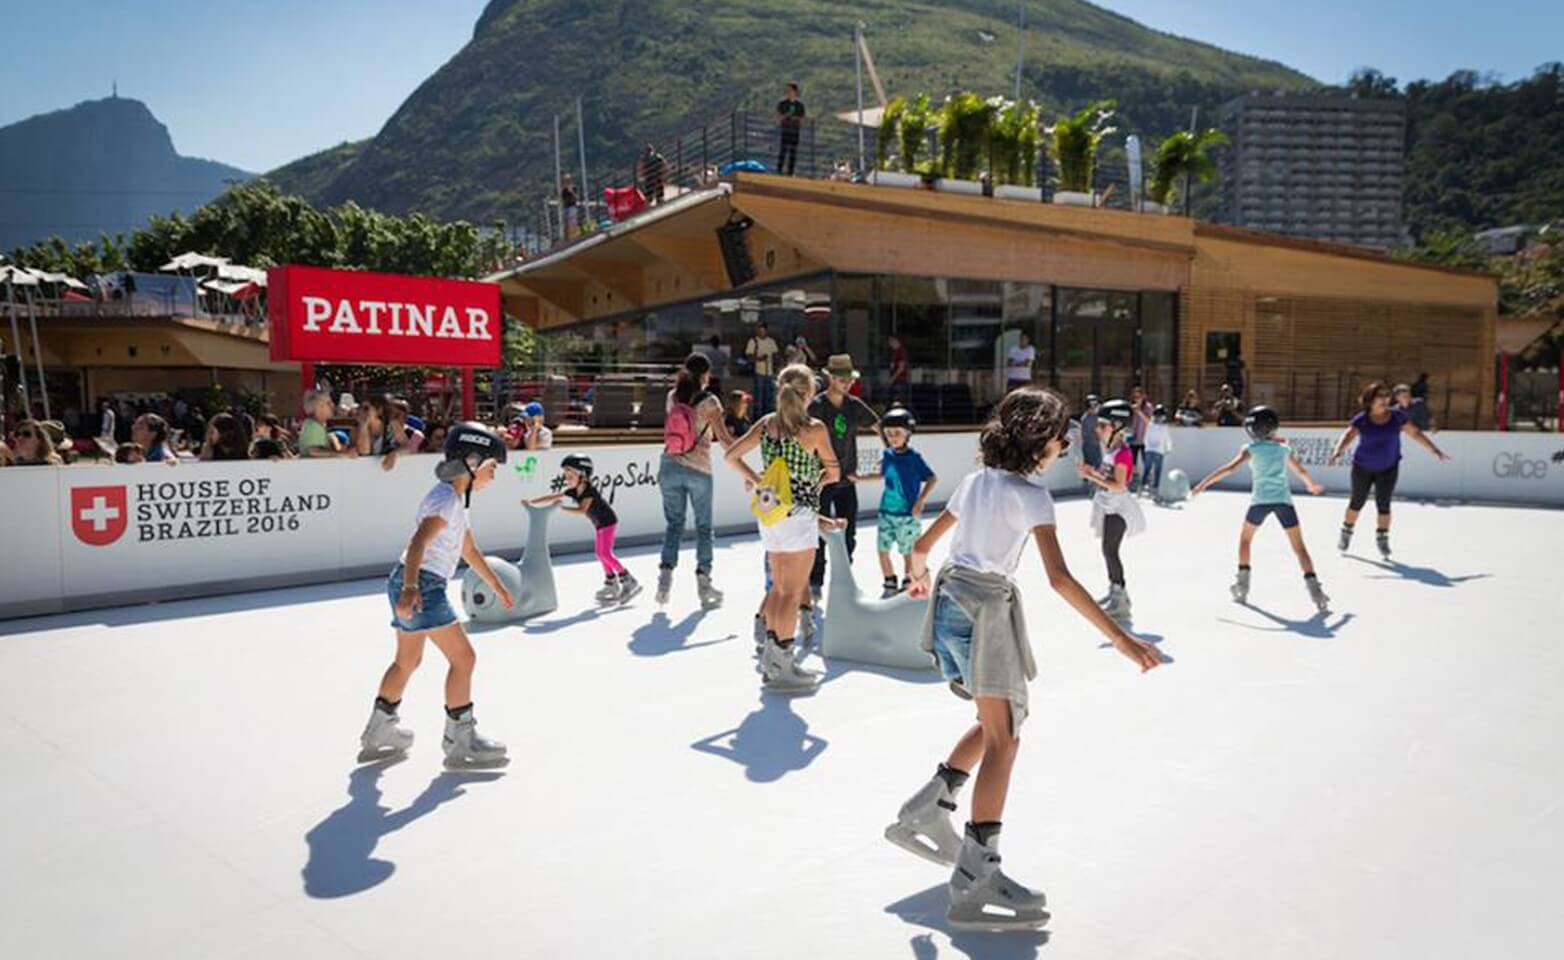 Synthetic-ice-rink-at-the-Olympic-Summer-games-2016-in-Brazil